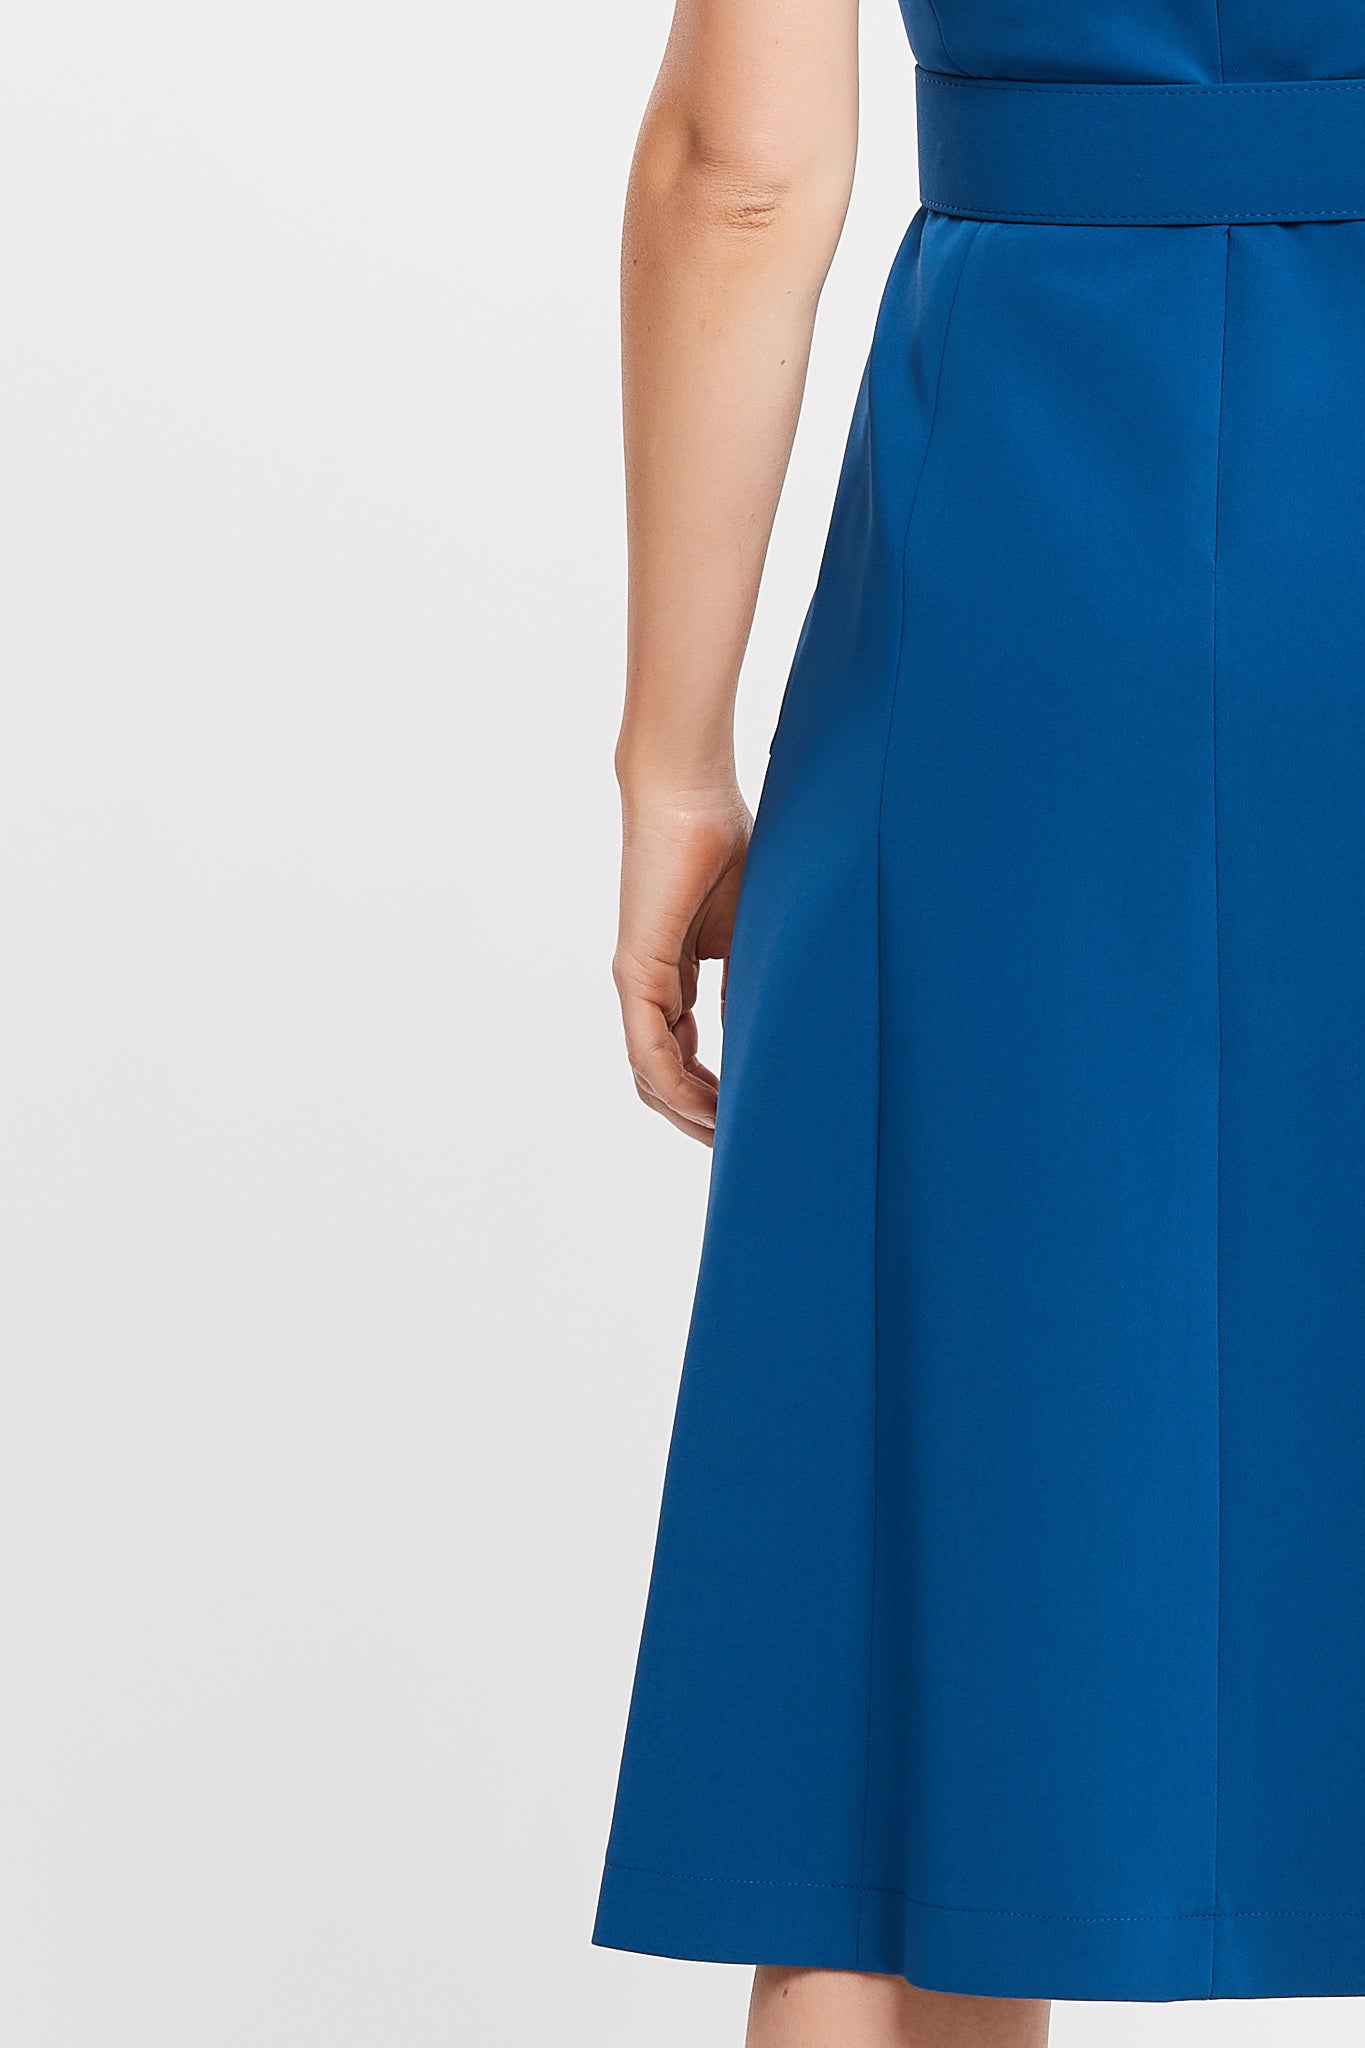 Jordanne Sleeveless A-line Blue Work and Cocktail Dress